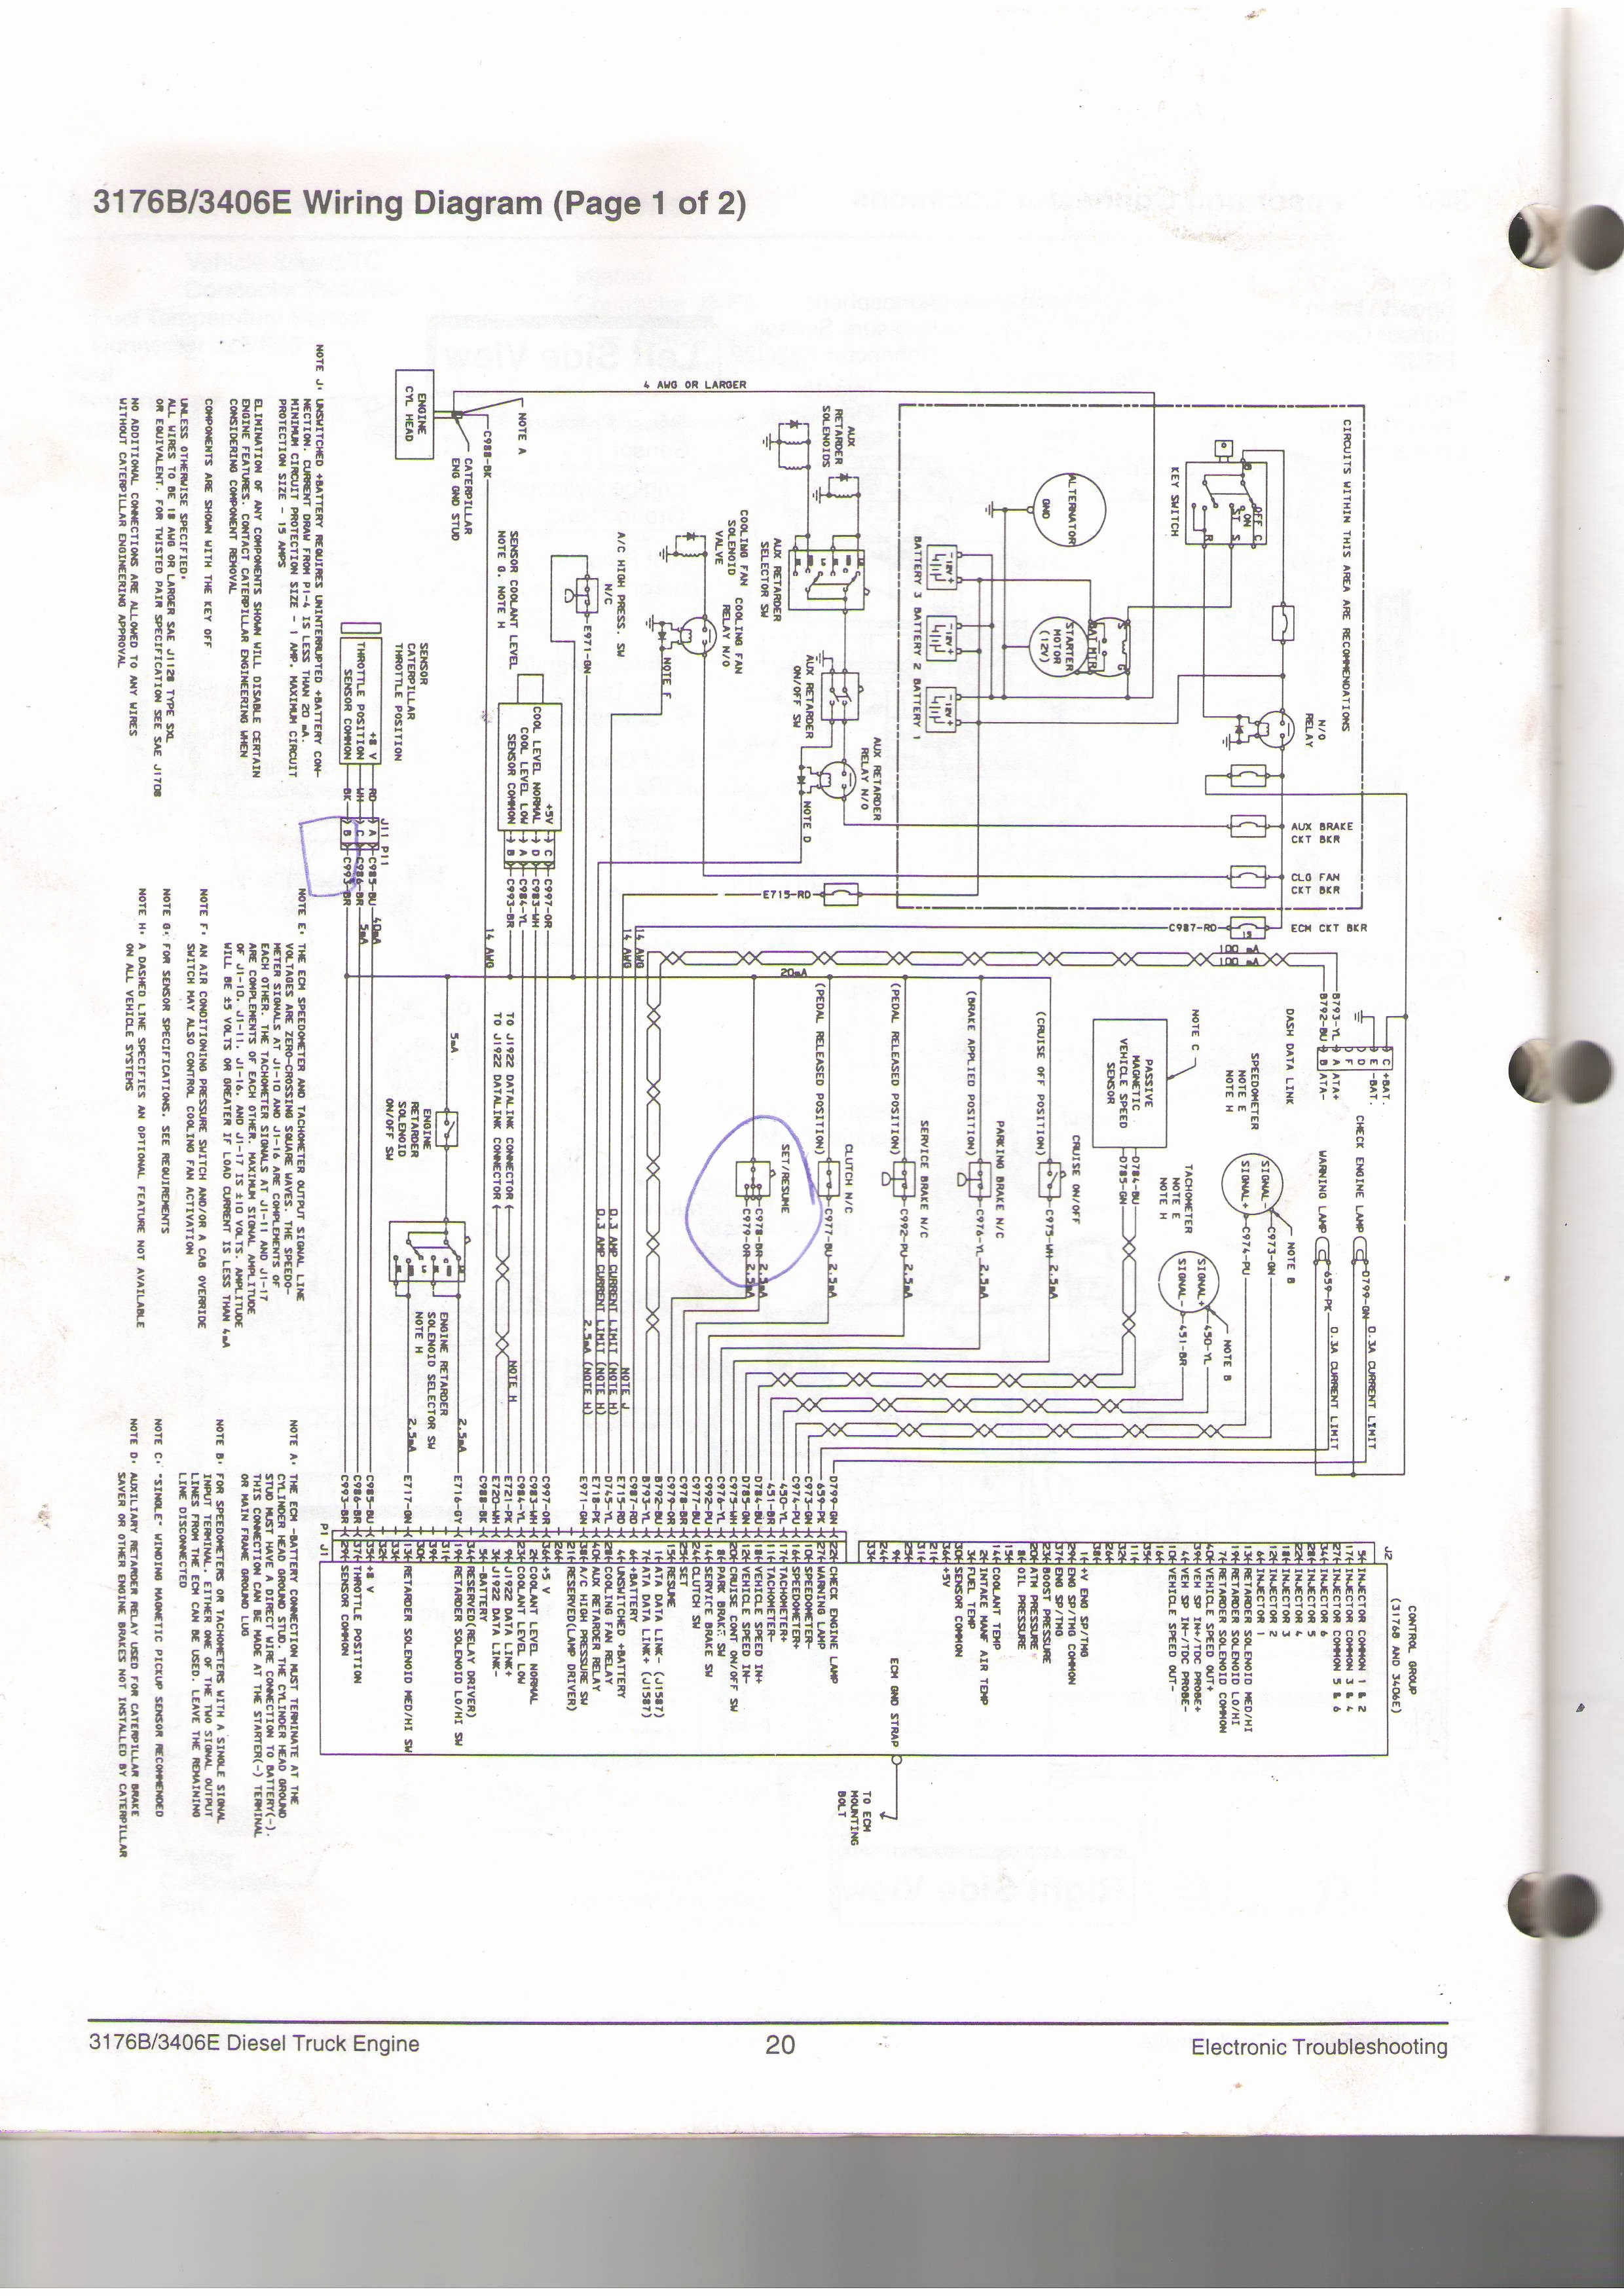 Cat Ecm Pin Wiring Diagram 70 C10 | Wiring Library - Cat 70 Pin Ecm Wiring Diagram